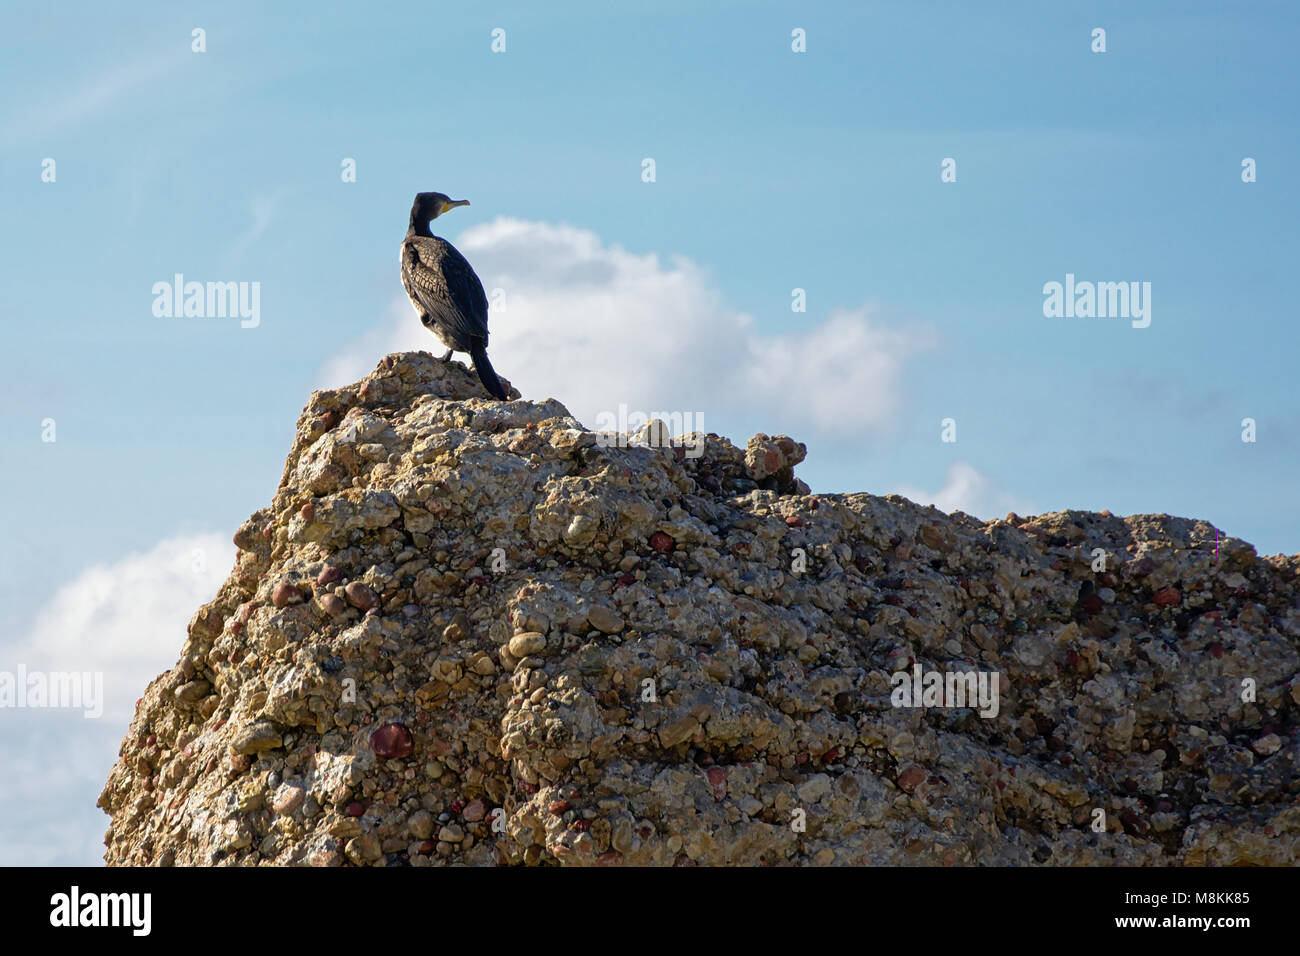 Cormorant sitting high on a worn piece of concrete, part of an old bunker in Karosta ex soviet base in Liepaja, - Stock Image